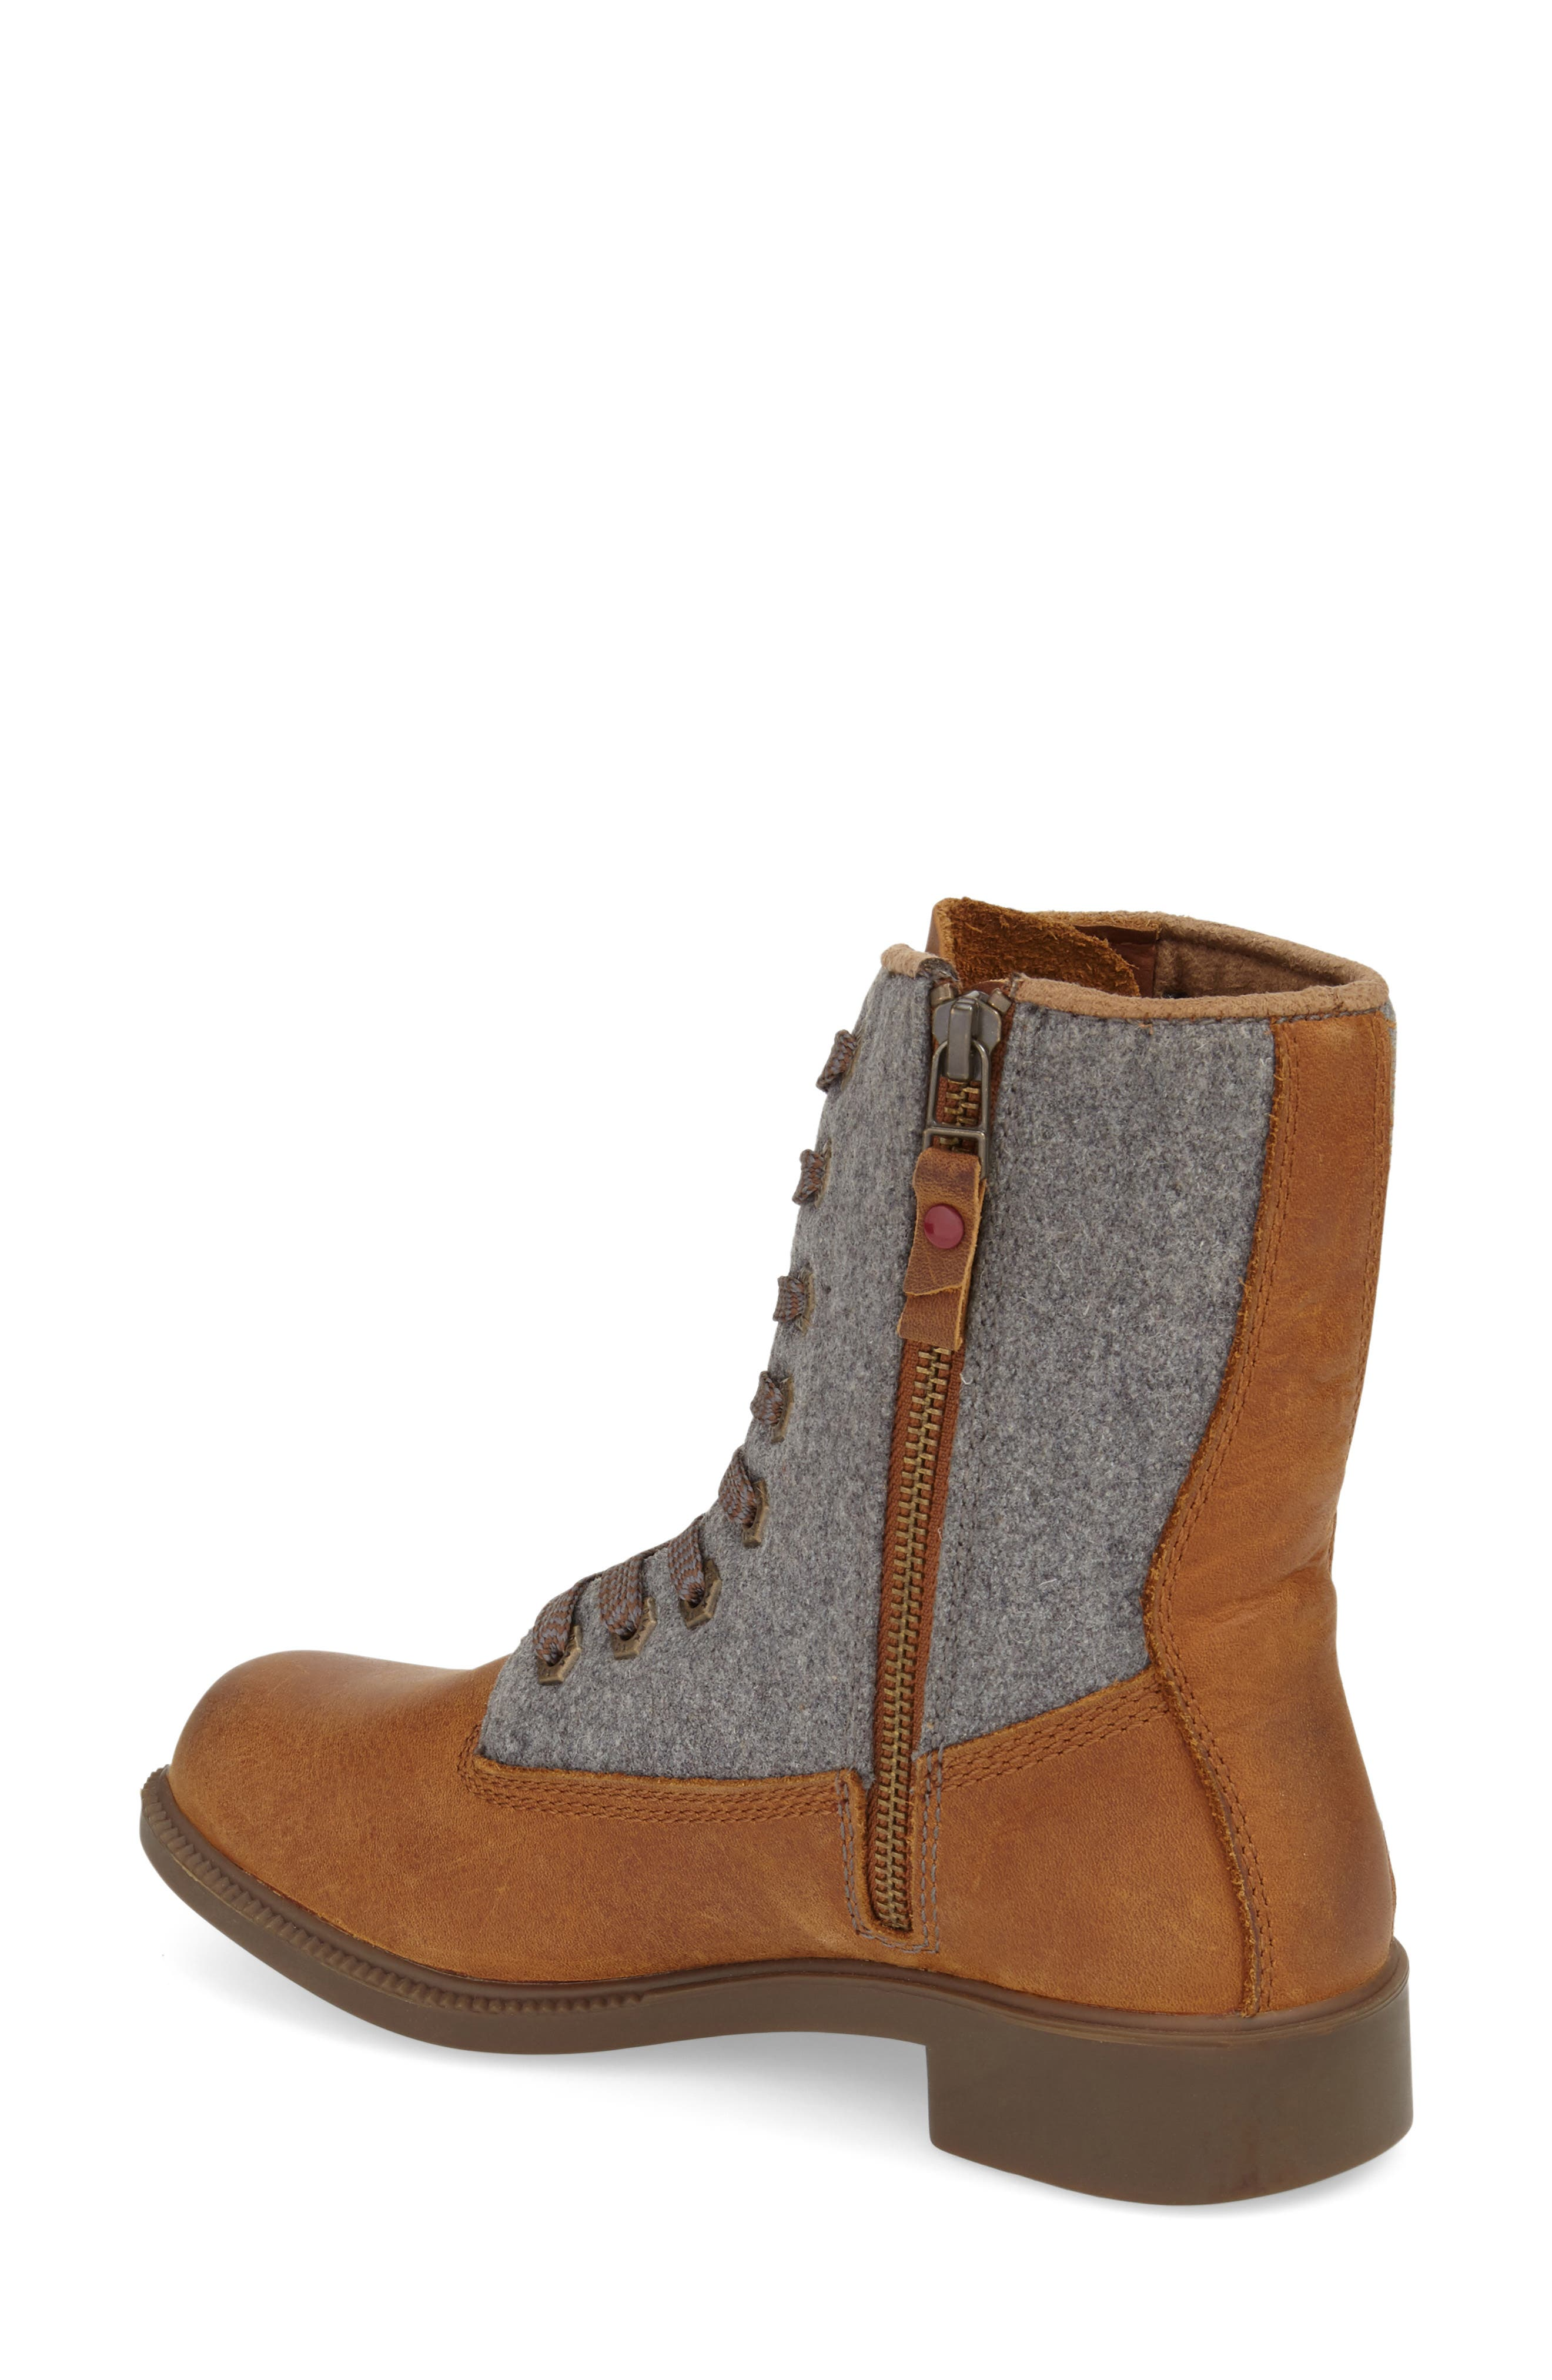 'Addison' Waterproof Insulated Zip Boot,                             Alternate thumbnail 2, color,                             240